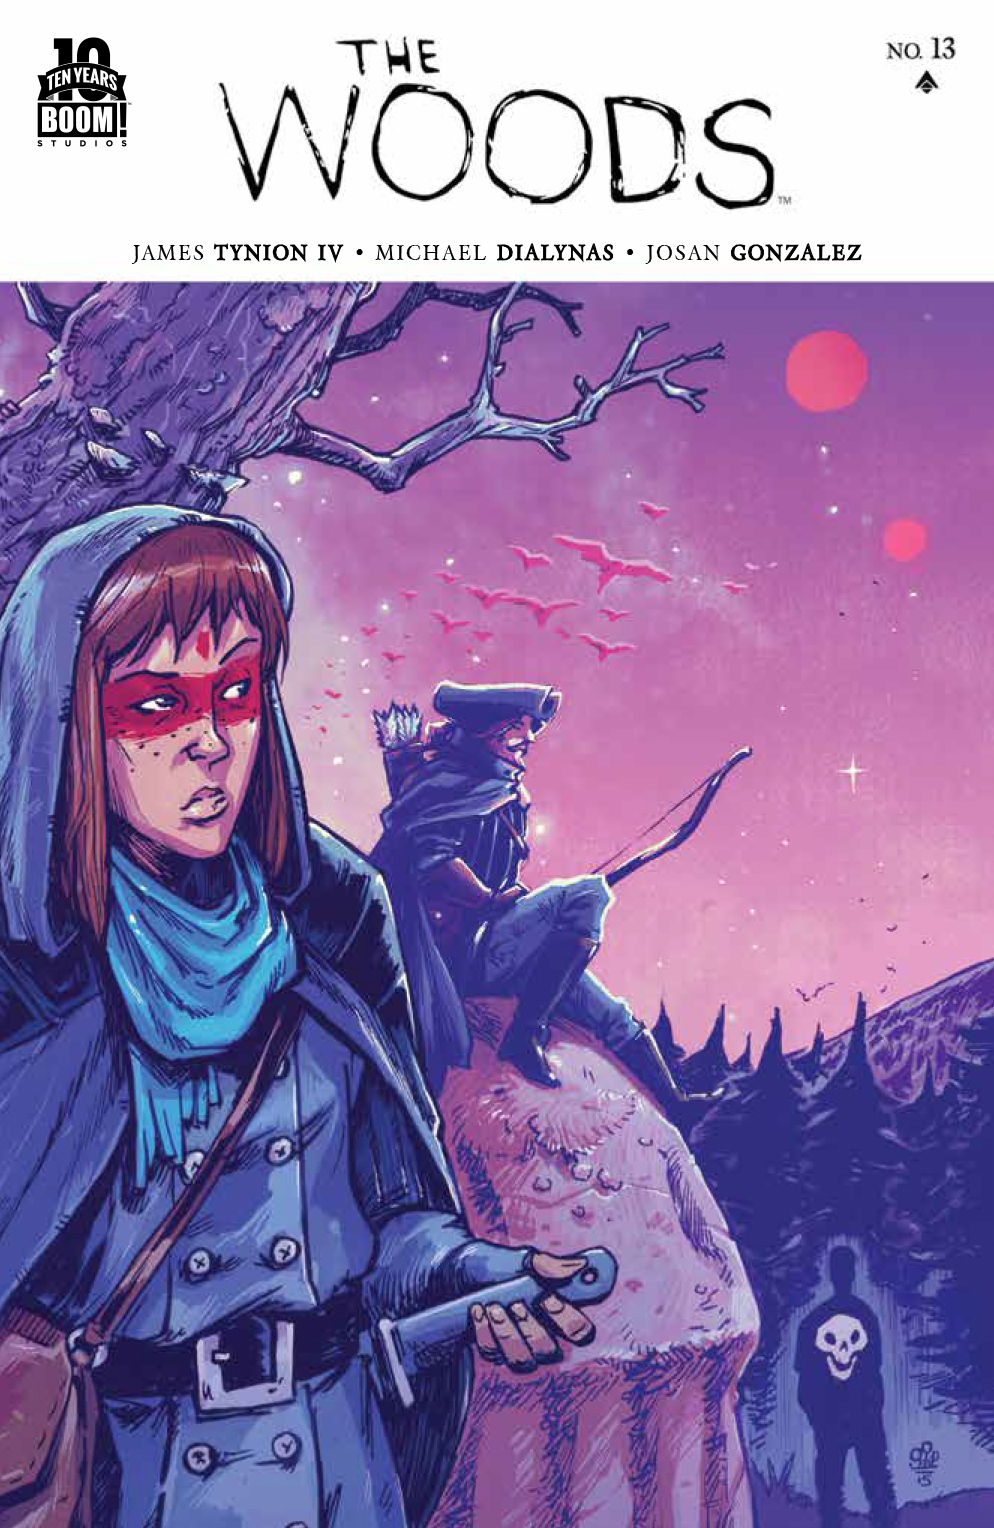 The Woods #13 Preview